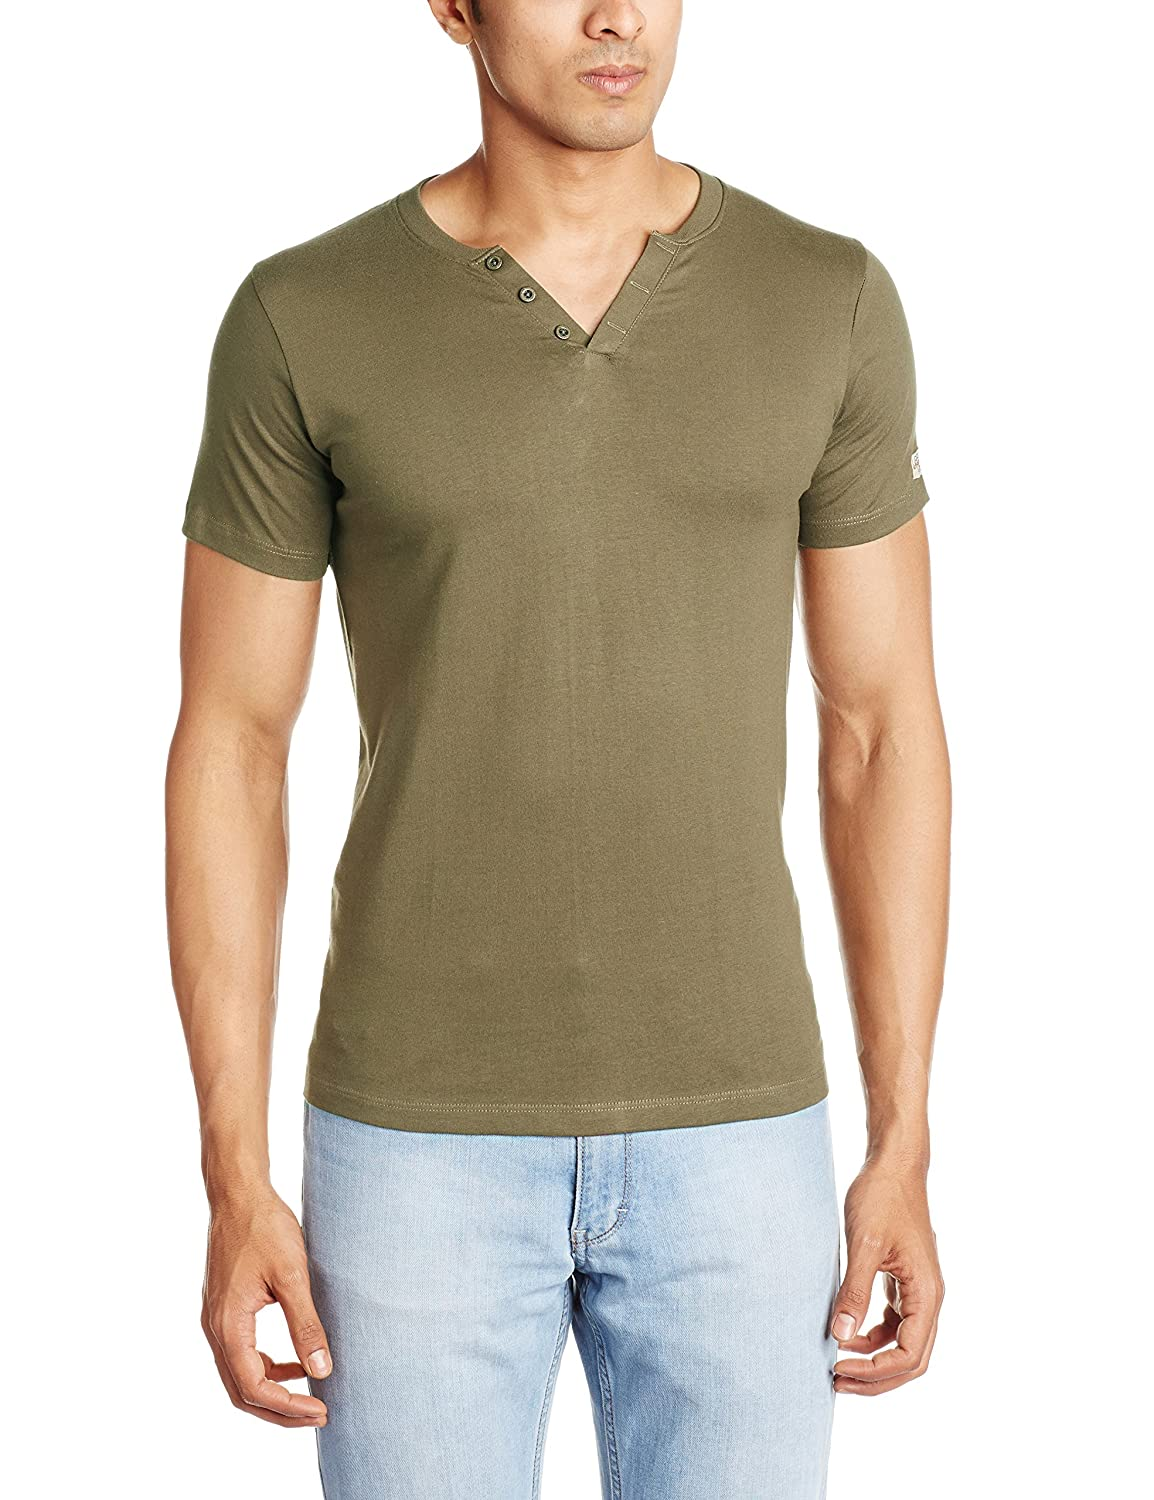 Style Shell Men's Cotton T-Shirt